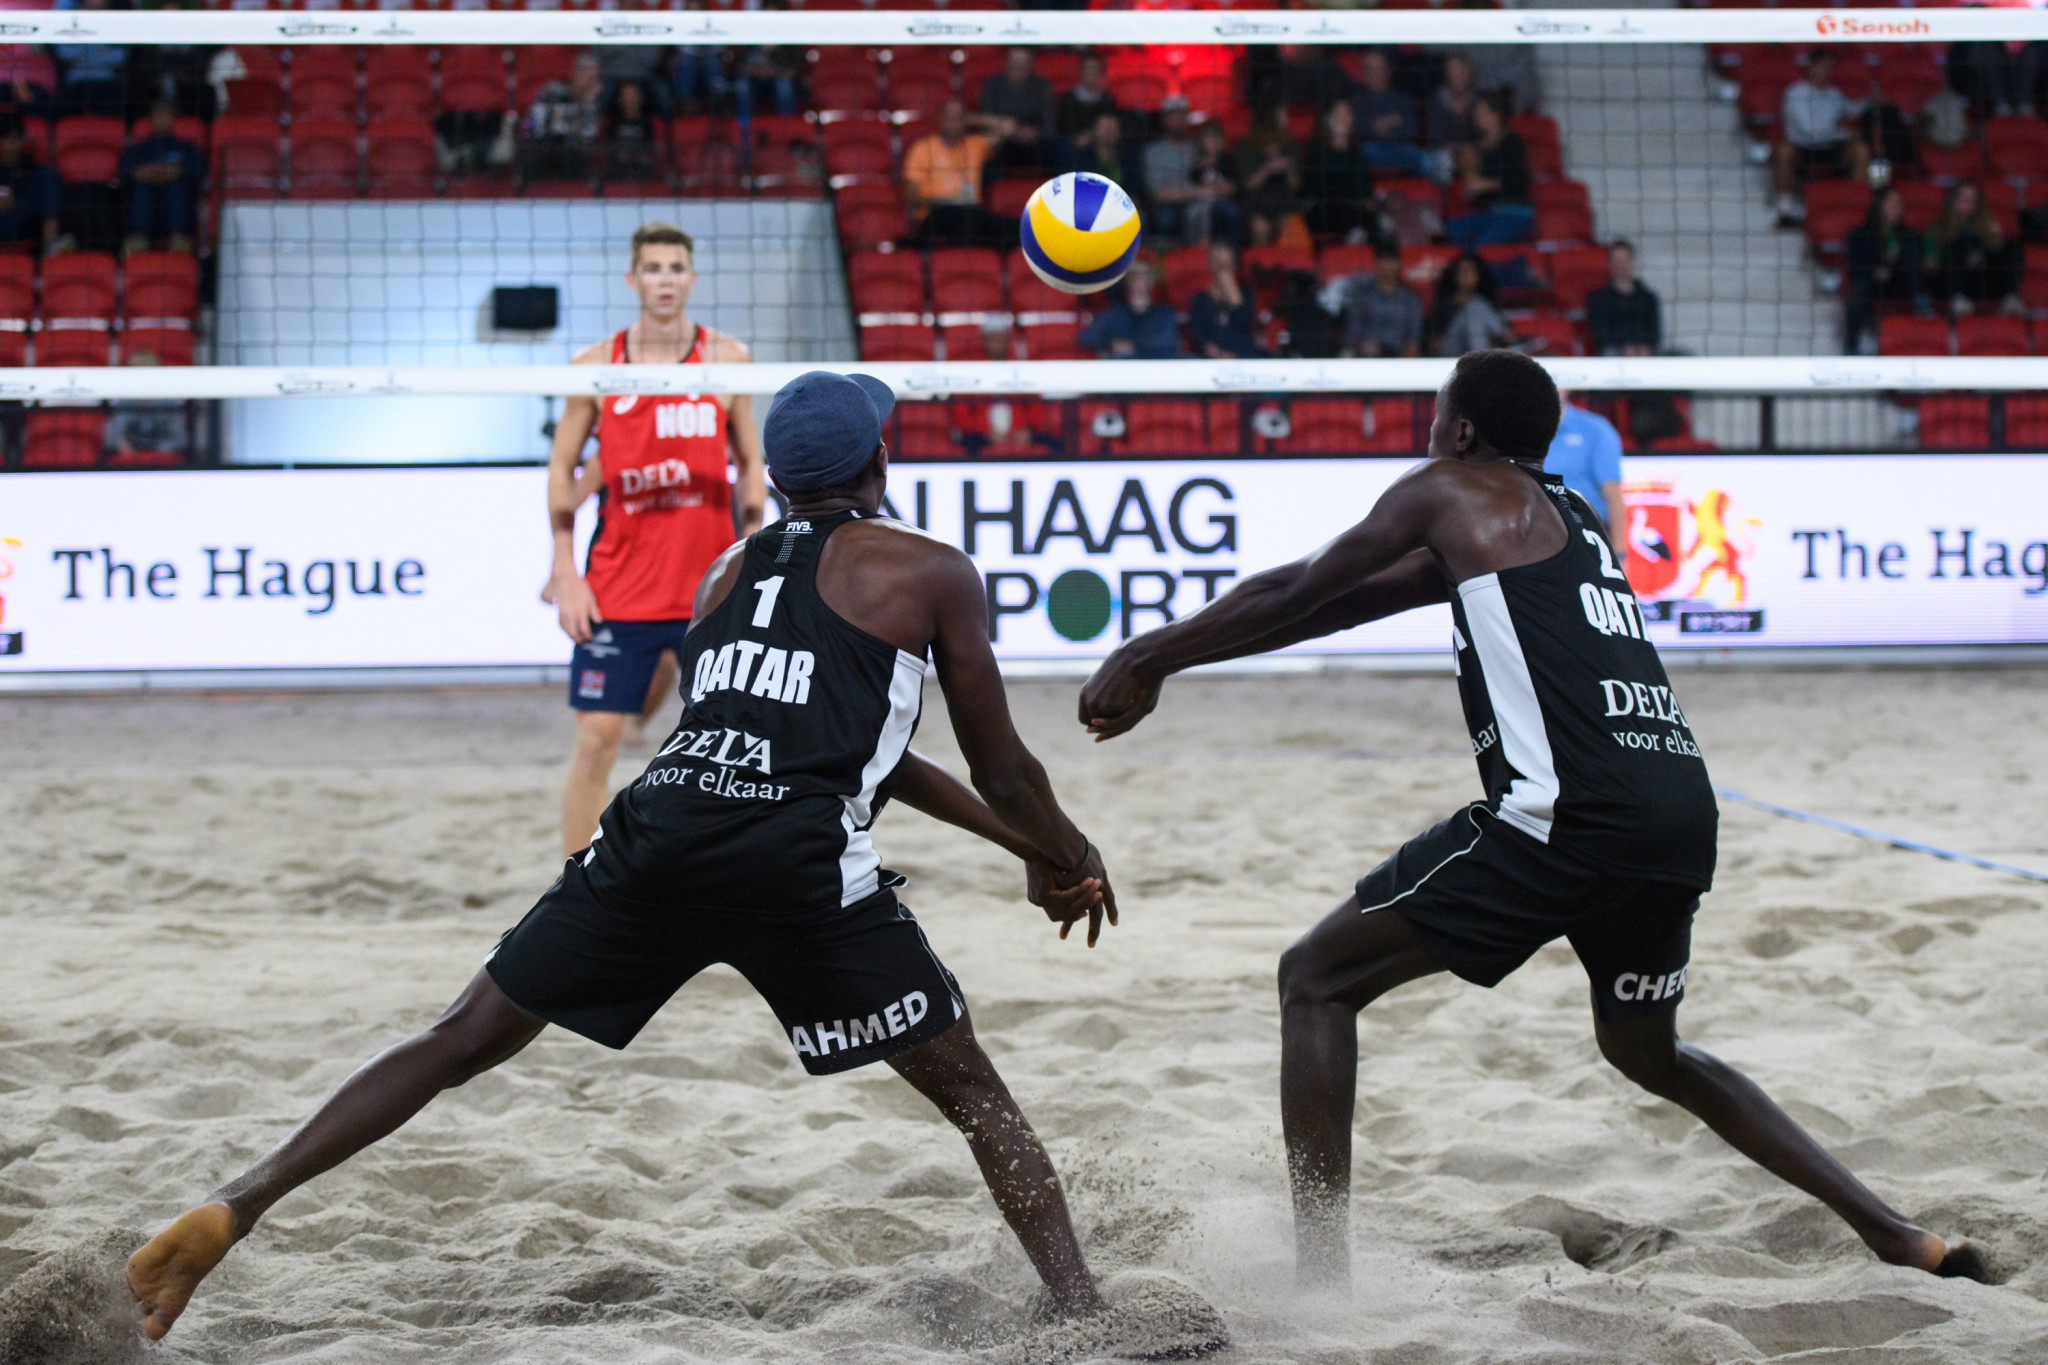 Qatari duo qualify for knock-out round in first appearance on FIVB Beach World Tour